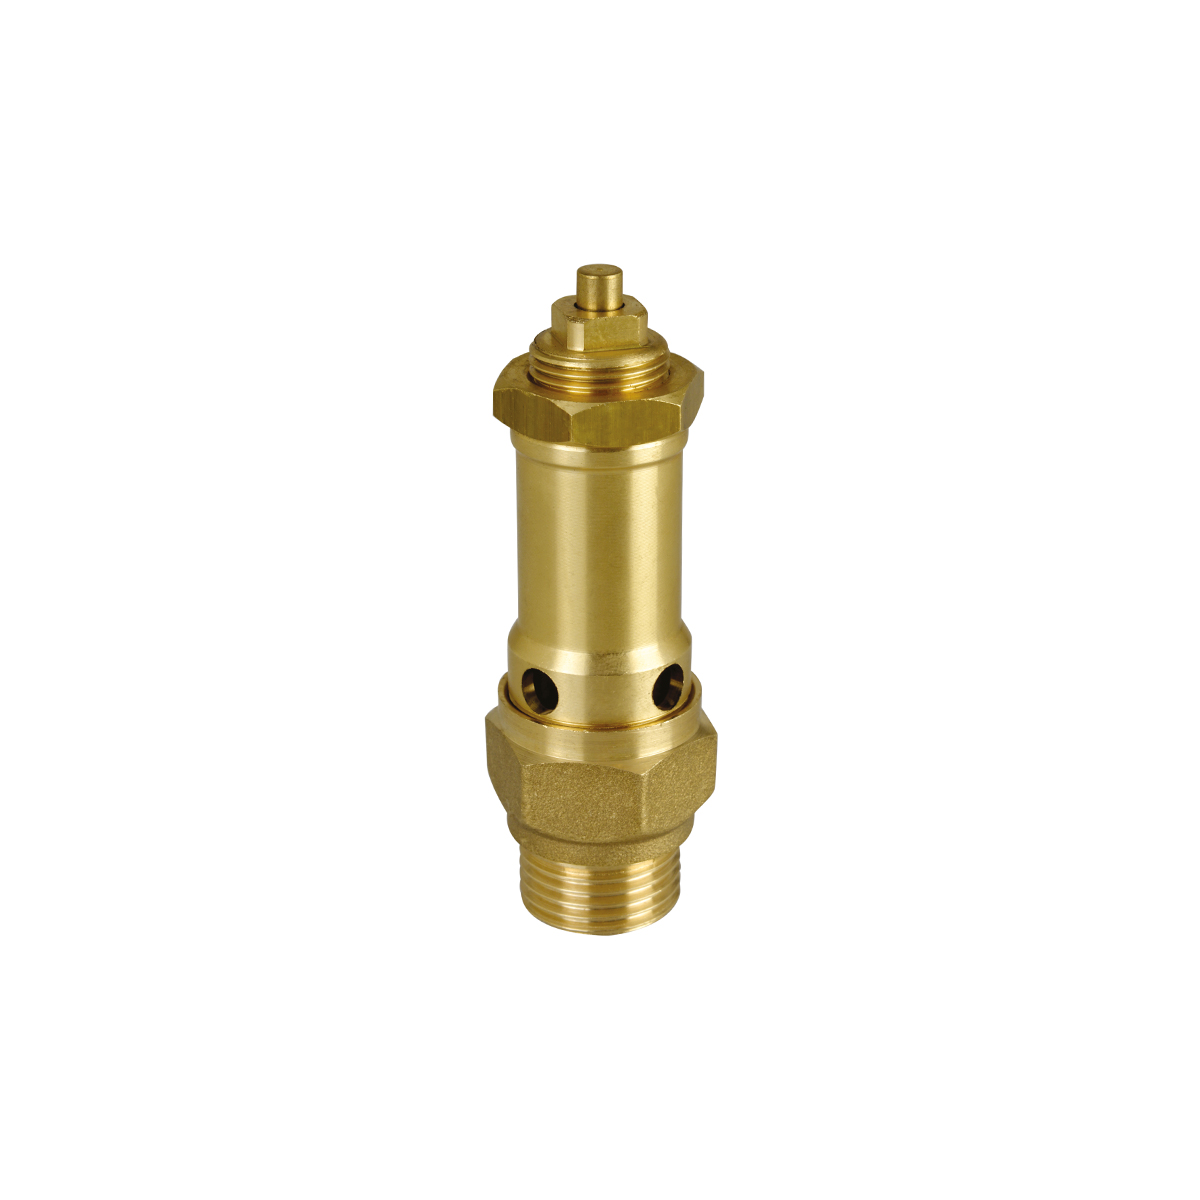 Free release safety valve